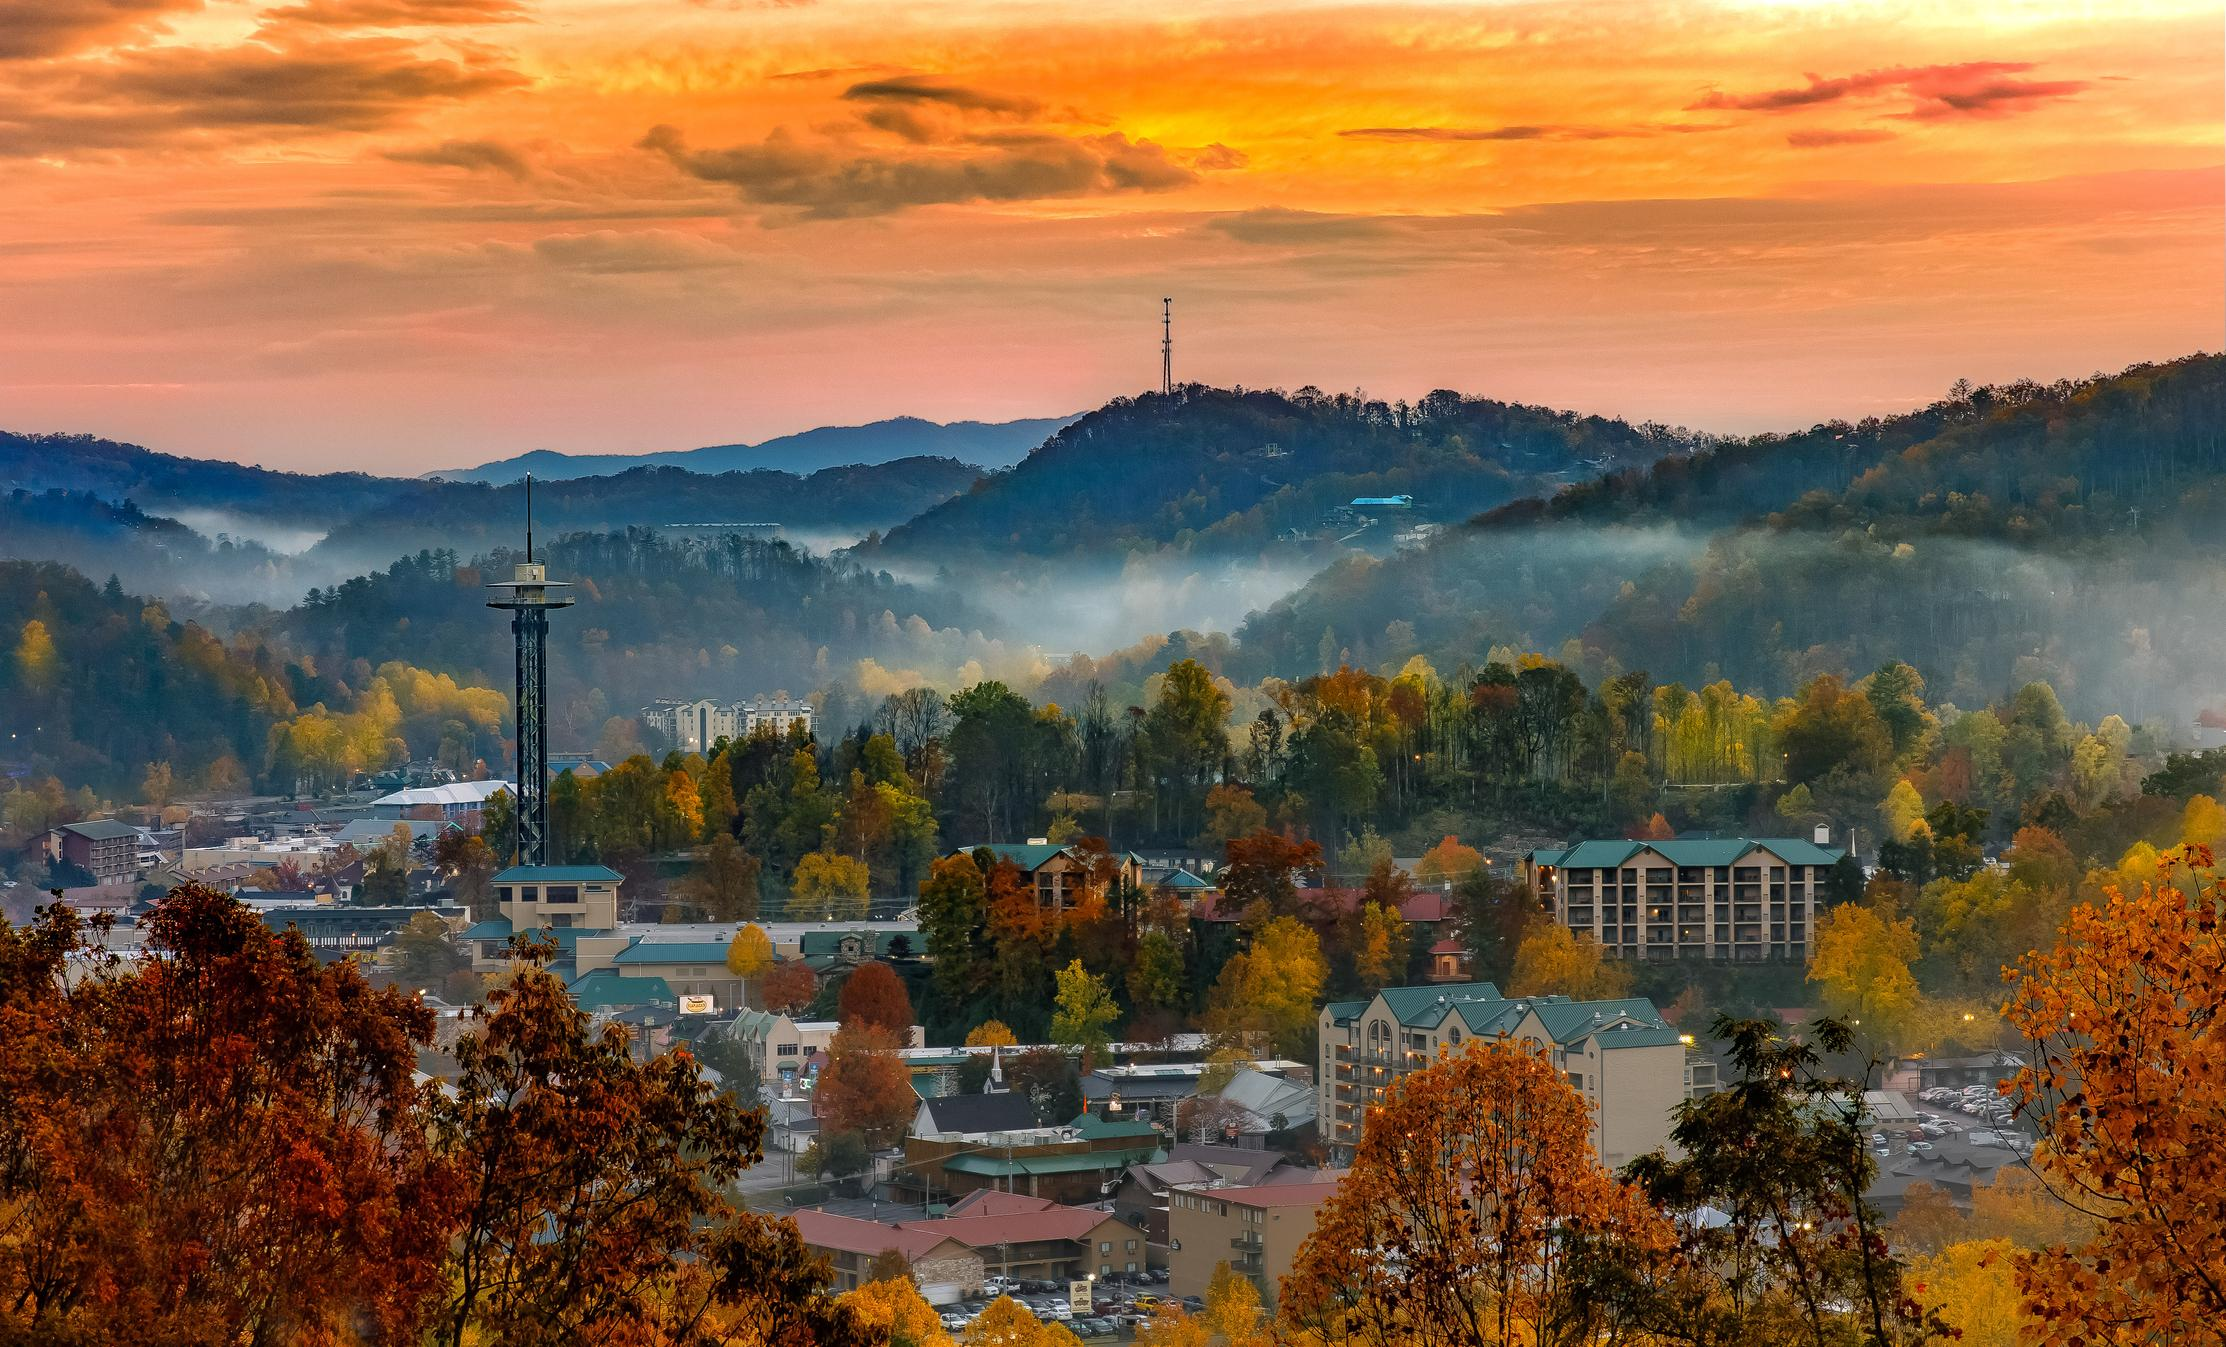 Wake up early and catch a sunrise over Gatlinburg.